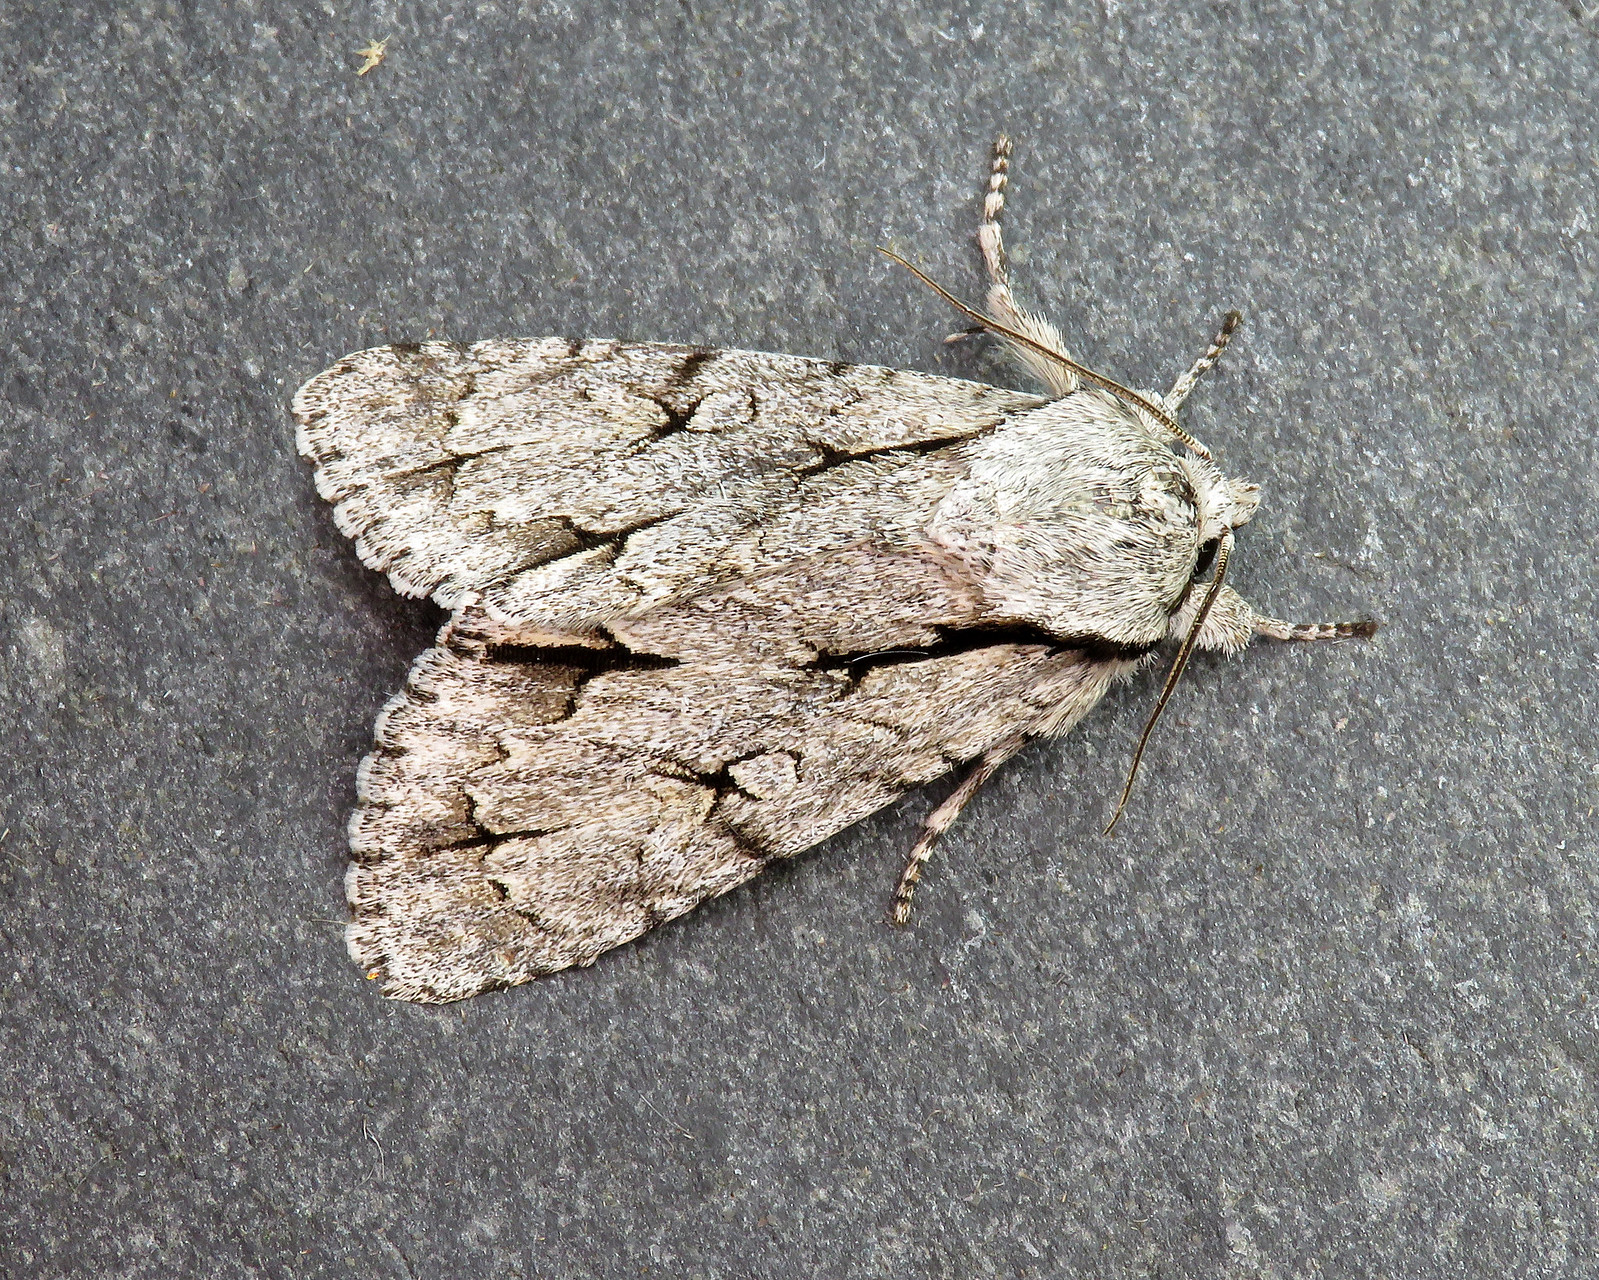 73.038 BF2284 Grey/Dark Dagger - Acronicta psi/tridens